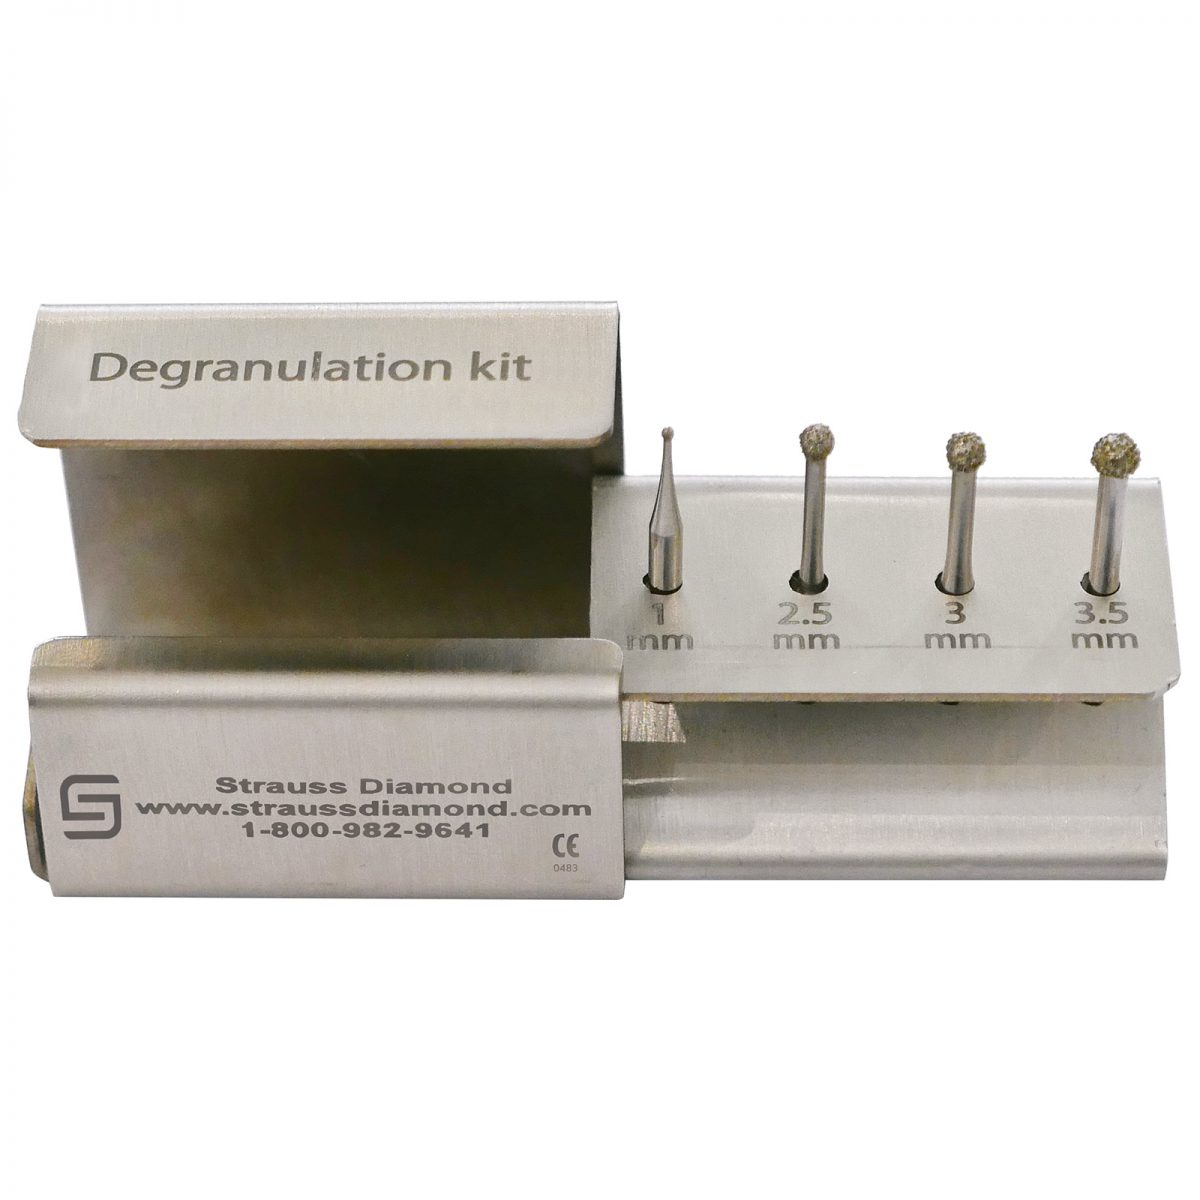 Degranulation Burs